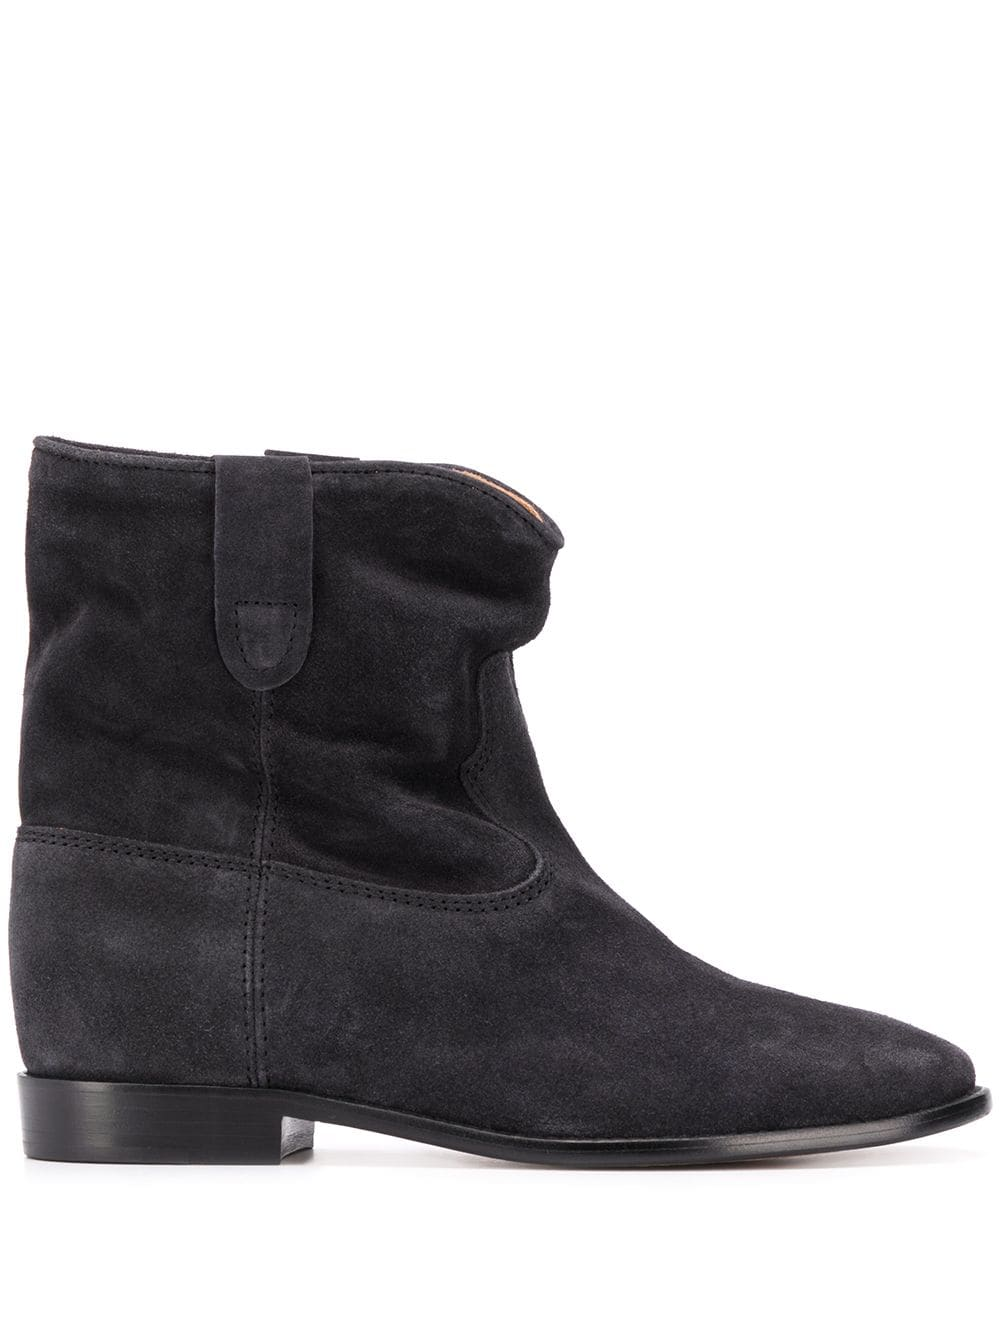 <p class='small-title'>ISABEL MARANT</p>Ankle boots